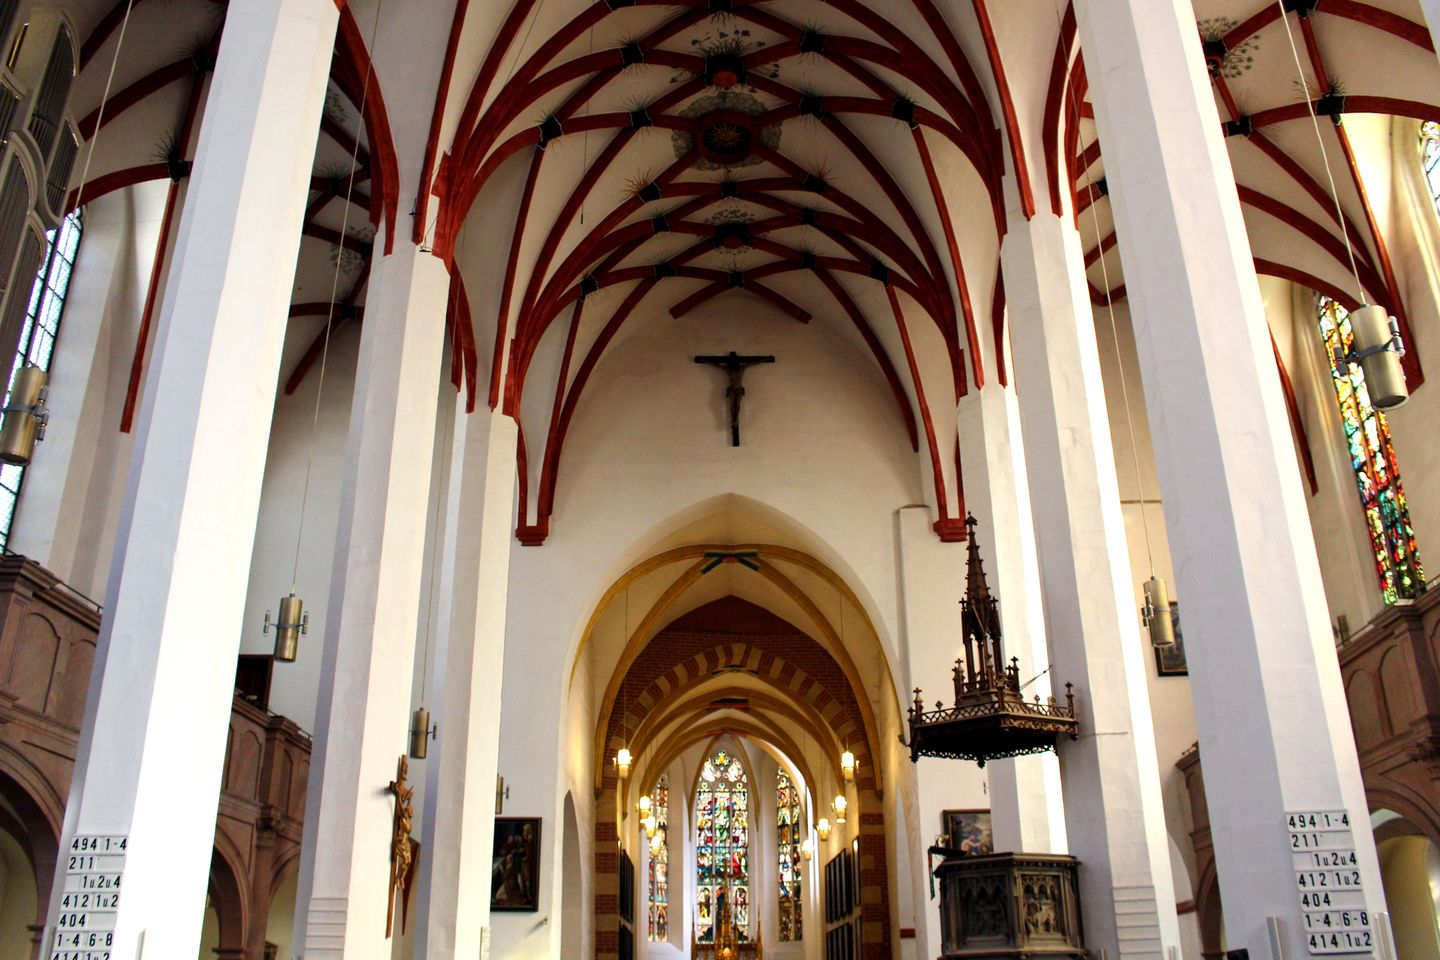 Thomaskirche interior